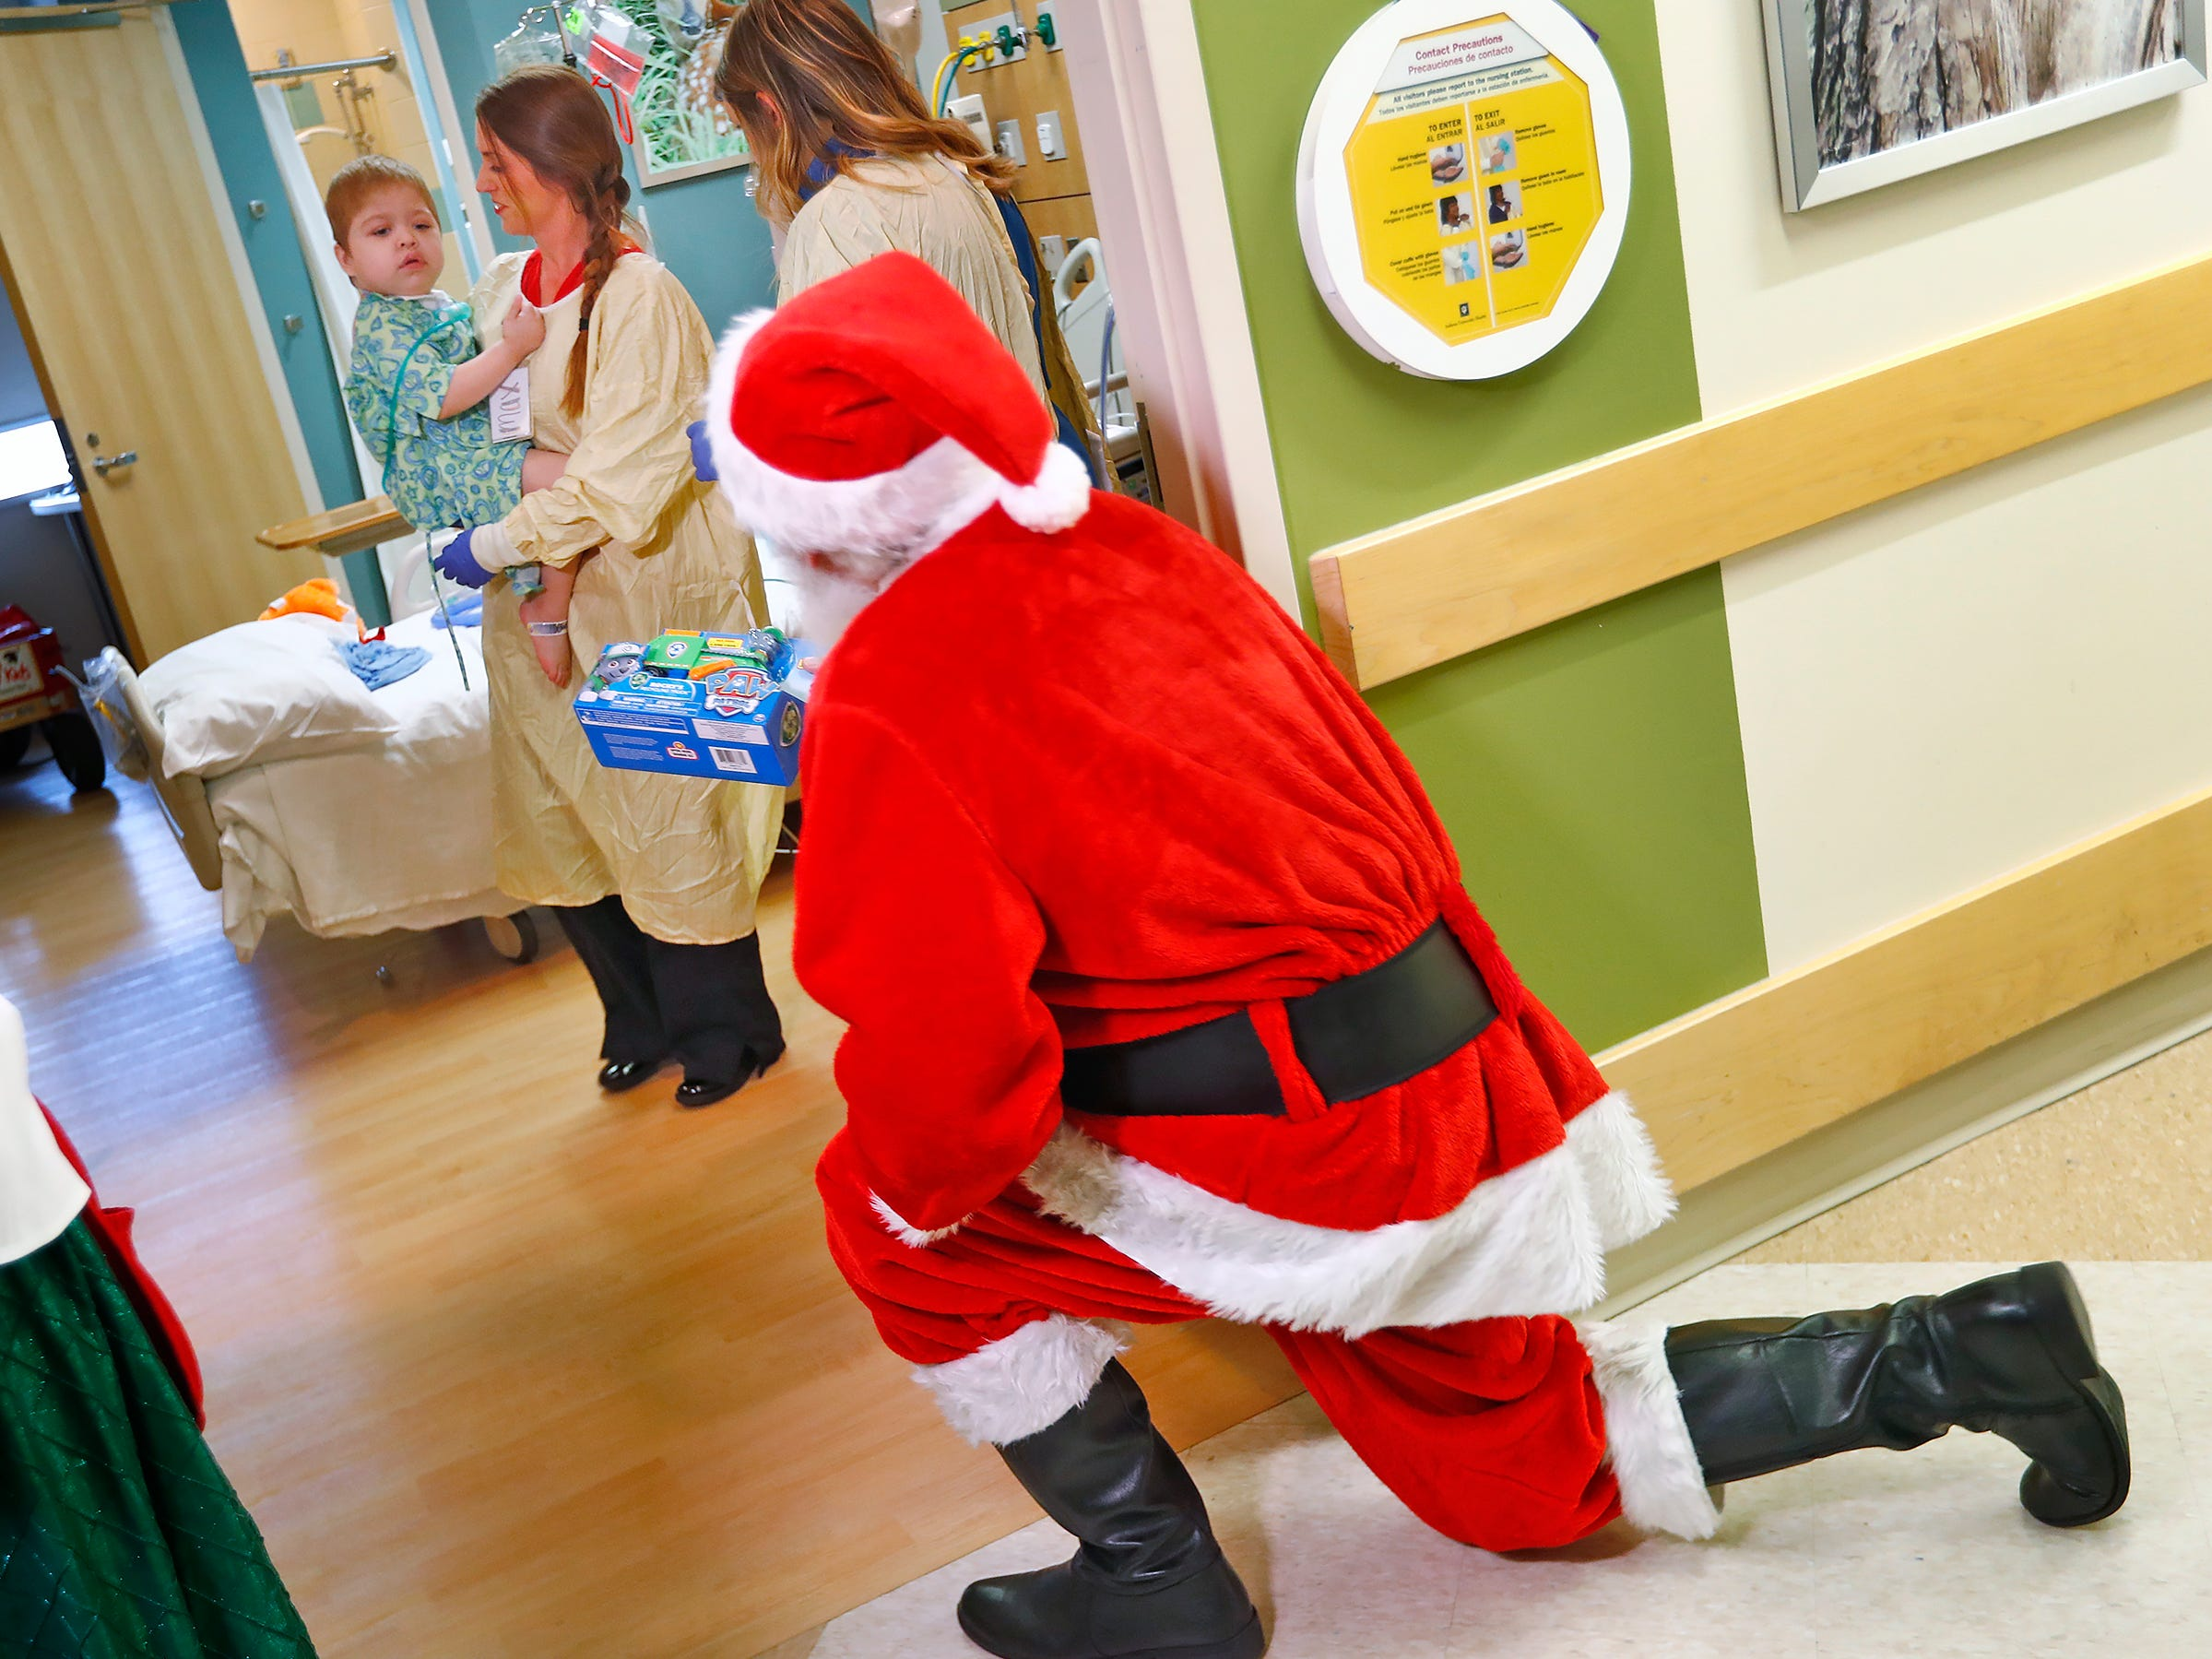 Kristen Cote, RN, center, and Child Life Specialist Meg Sanders, bring Max Goodman out to visit with Santa and Mrs. Claus, aka Bill and Kathy Armstrong, at Riley Children's Health, Thursday, Dec. 13, 2018.